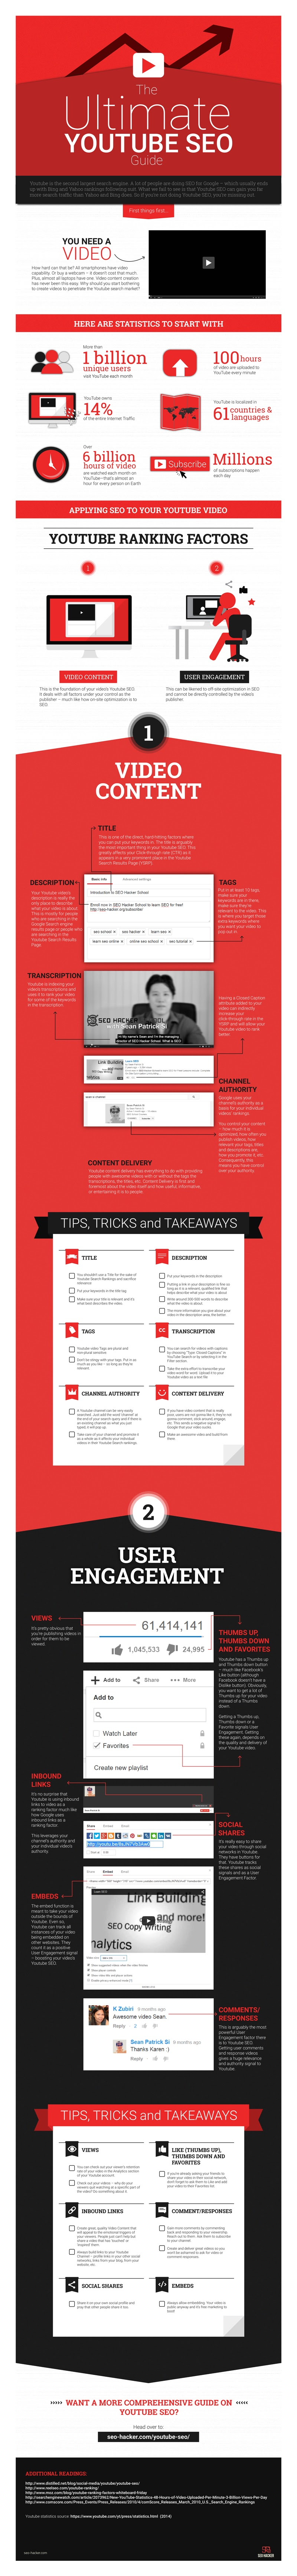 Ultimate YouTube <a href='https://dragonflydigital.co.za/search-engine-optimisation' alt='seo companies, Johannesburg South Africa'>SEO</a> Guide Infographic